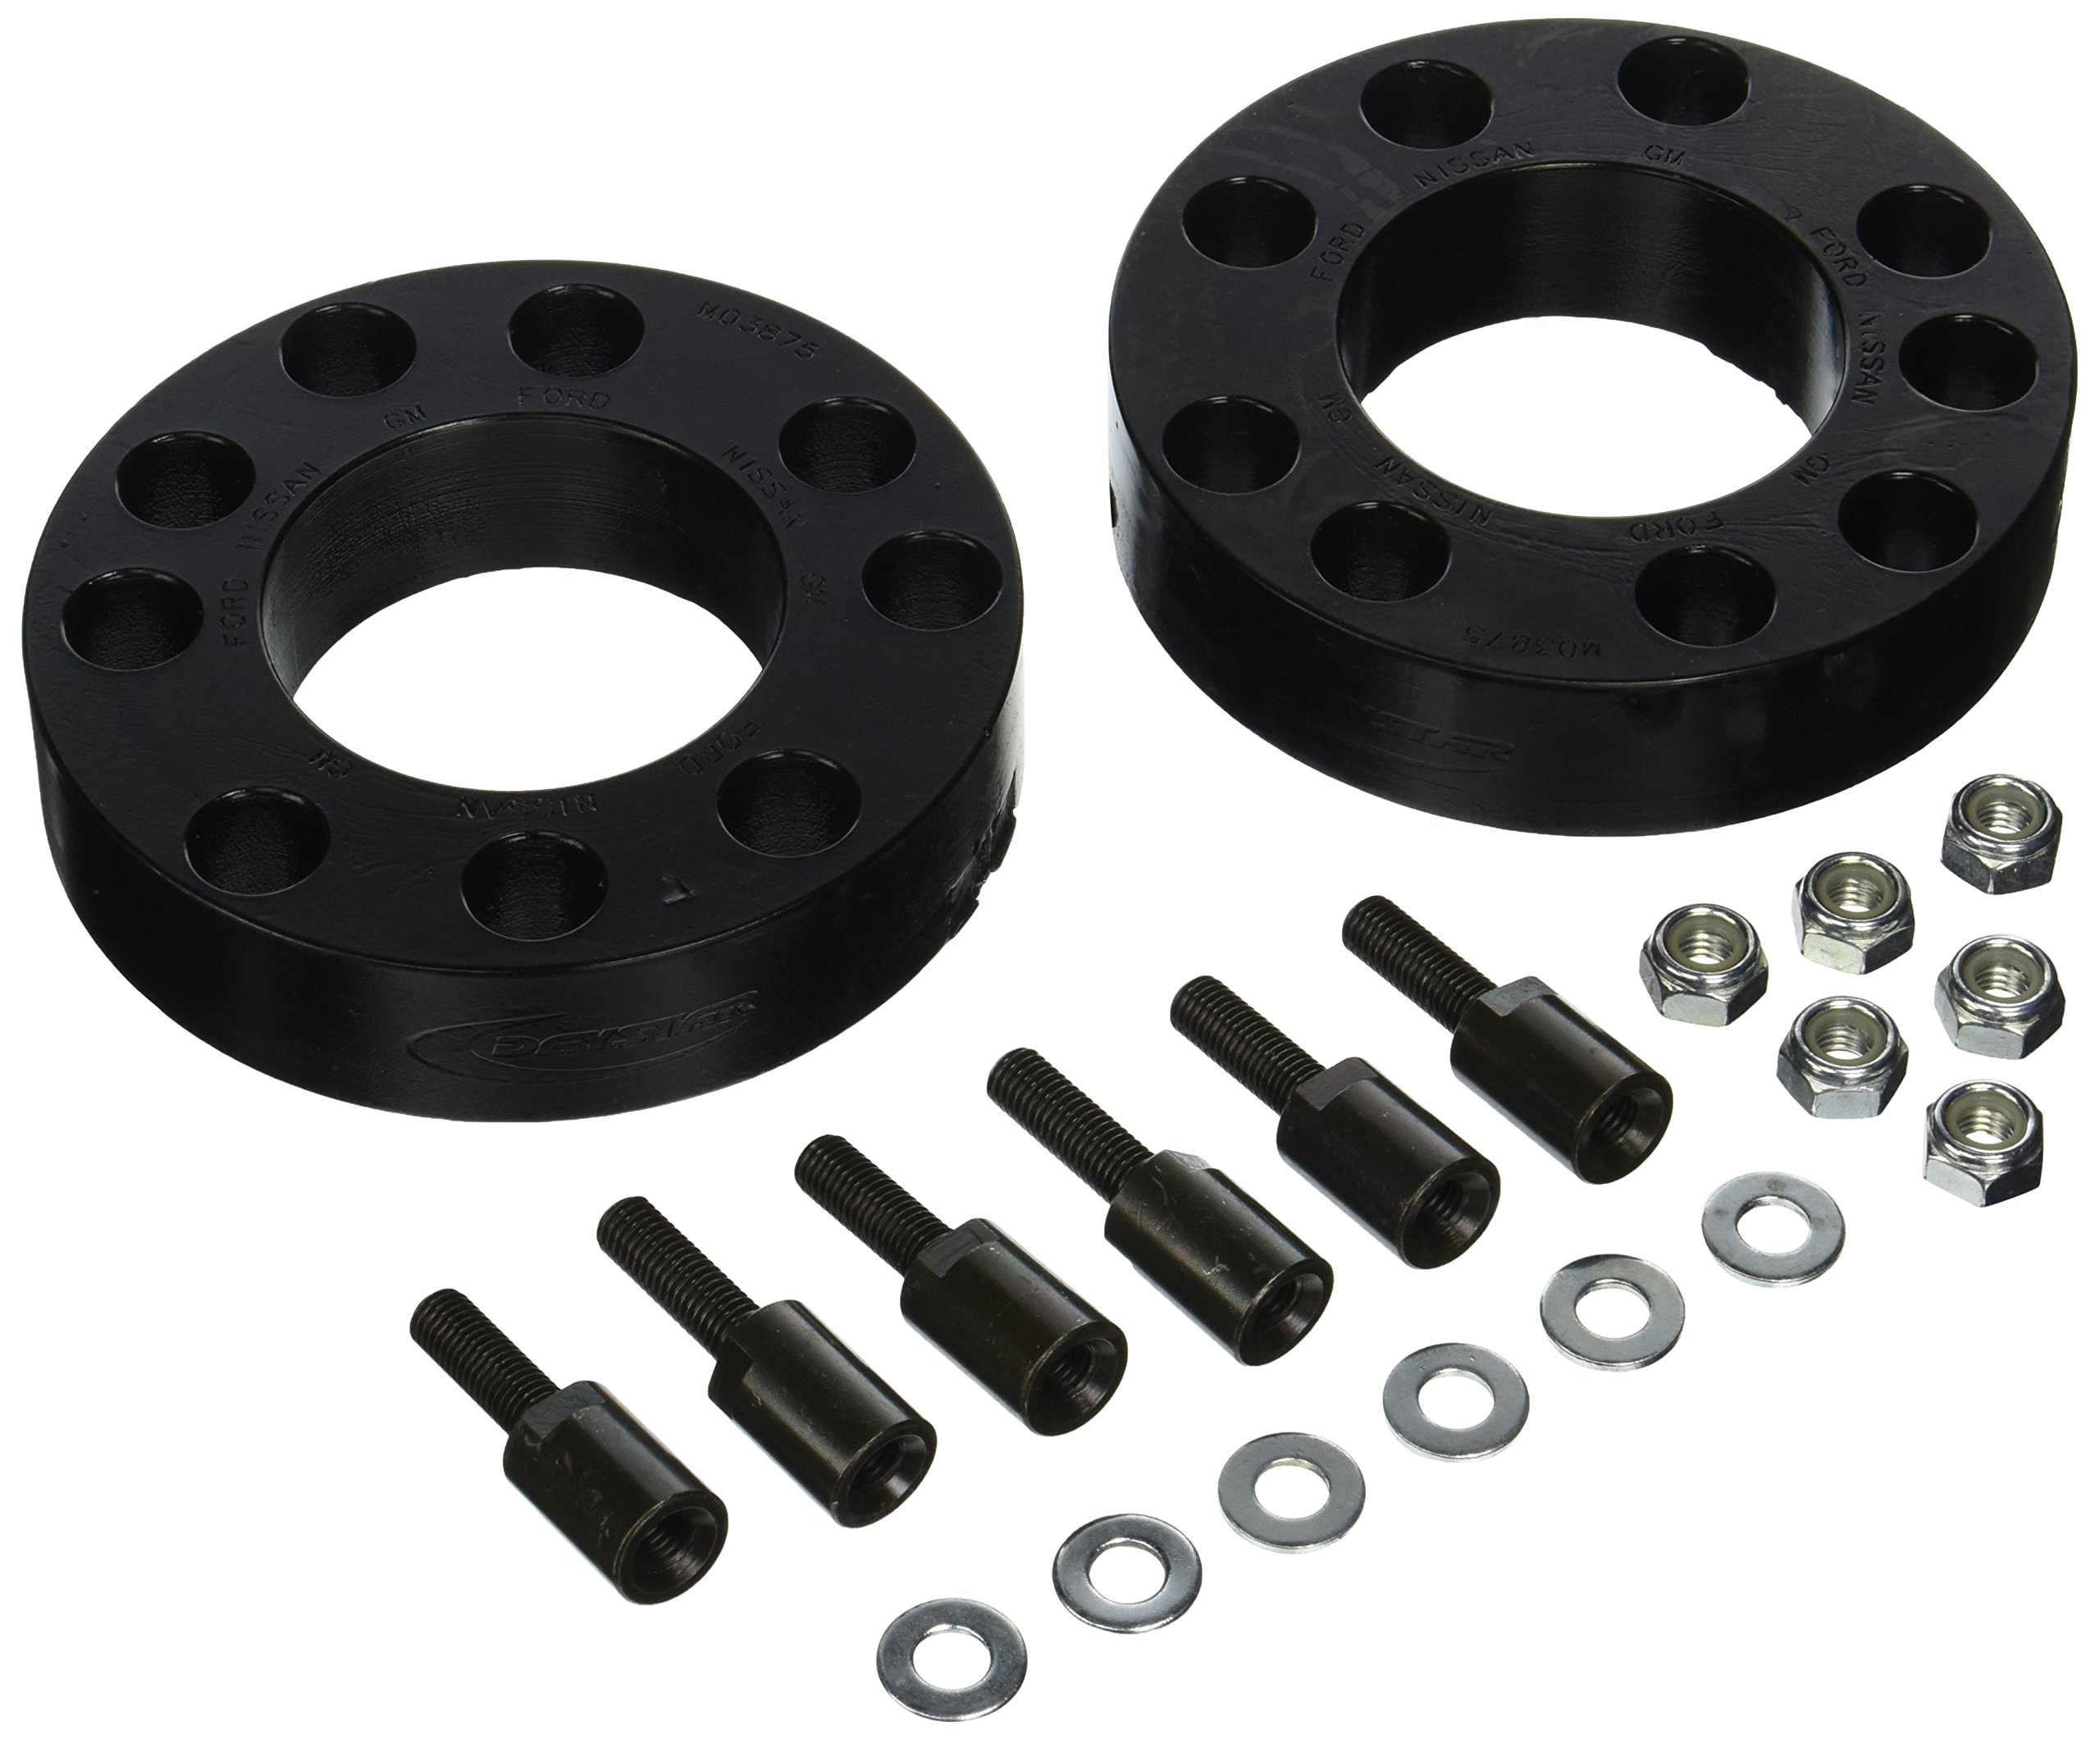 Daystar, Chevy/GMC 1500 Silverado 2'' Leveling Kit, fits 2014 to 2017 2/4WD, all transmissions, all cabs KG09129BK, Made in America